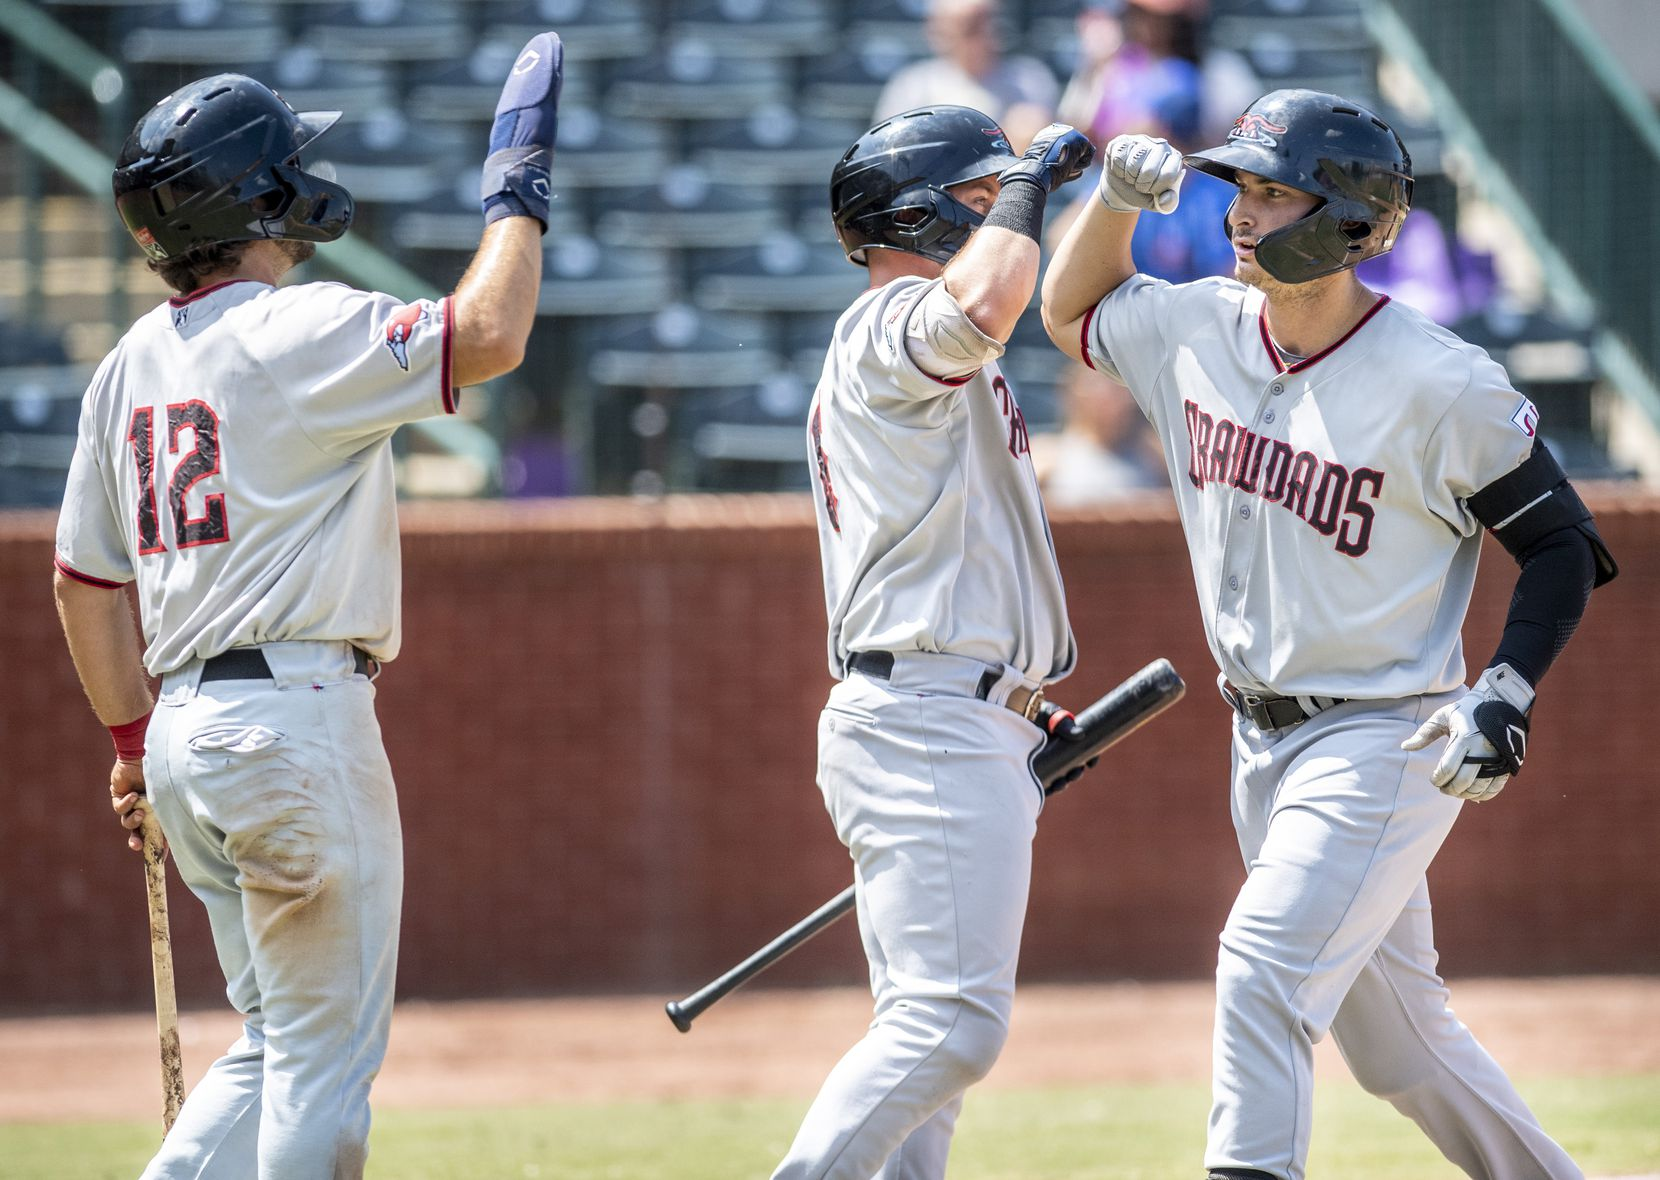 Hickory Crawdad's Justin Foscue (20), right, gets high fives from teammates Josh H. Smith (12), left, and Trey Hair (6), middle, after hitting a homerun during the game with the Greensboro Grasshoppers at First National Bank Field on Sunday, August 8, 2021 in Greensboro, N.C.